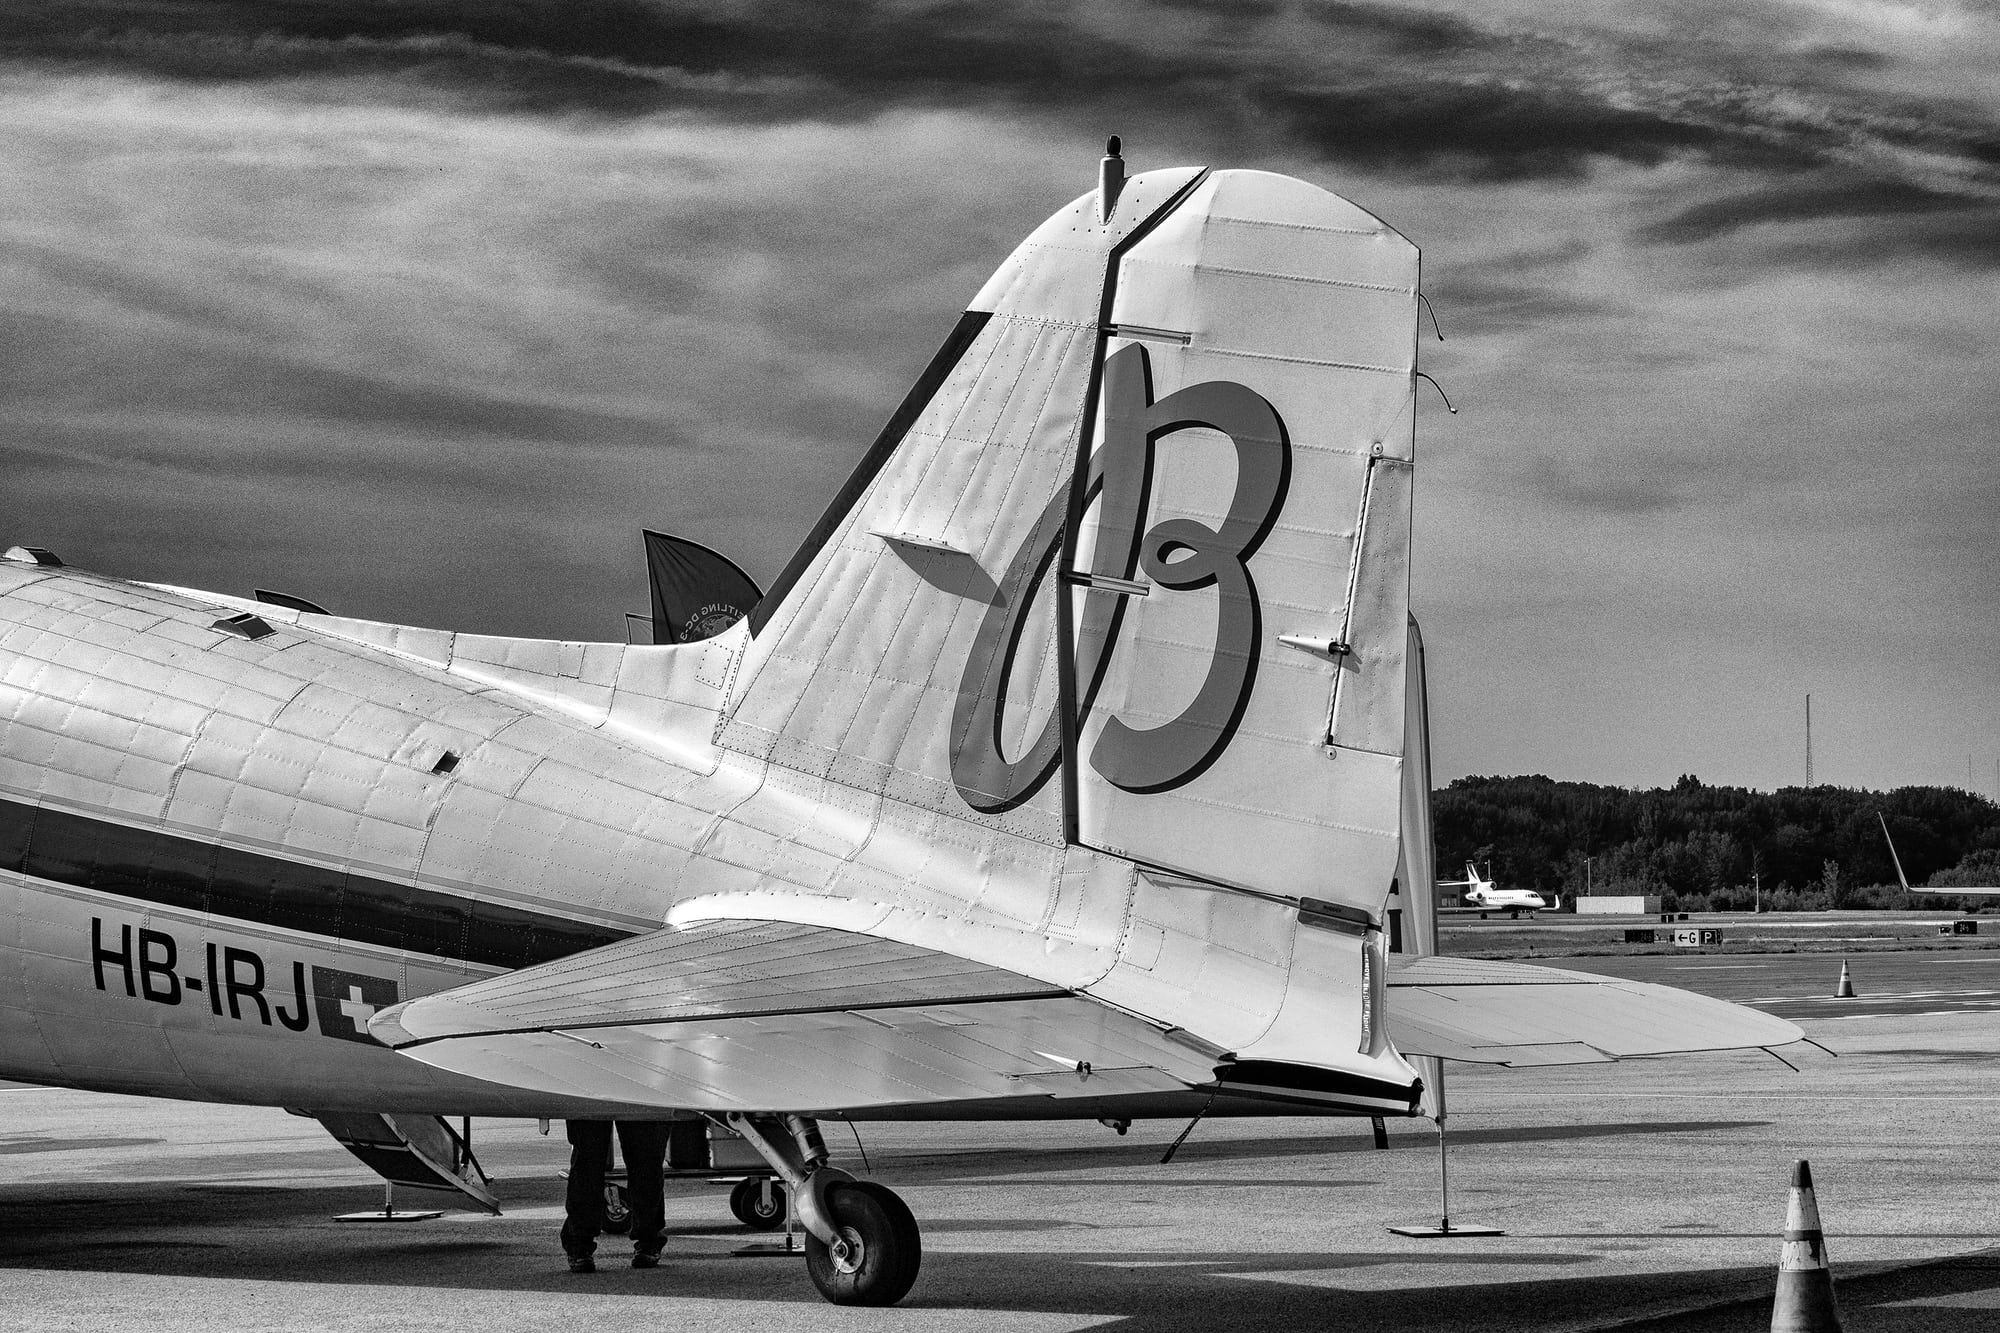 The Breitling DC-3 tail  Dispatches: Breitling's DC-3 To Become Oldest Aircraft Ever To Circle The Earth Dispatches: Breitling's DC-3 To Become Oldest Aircraft Ever To Circle The Earth P8212238 bw